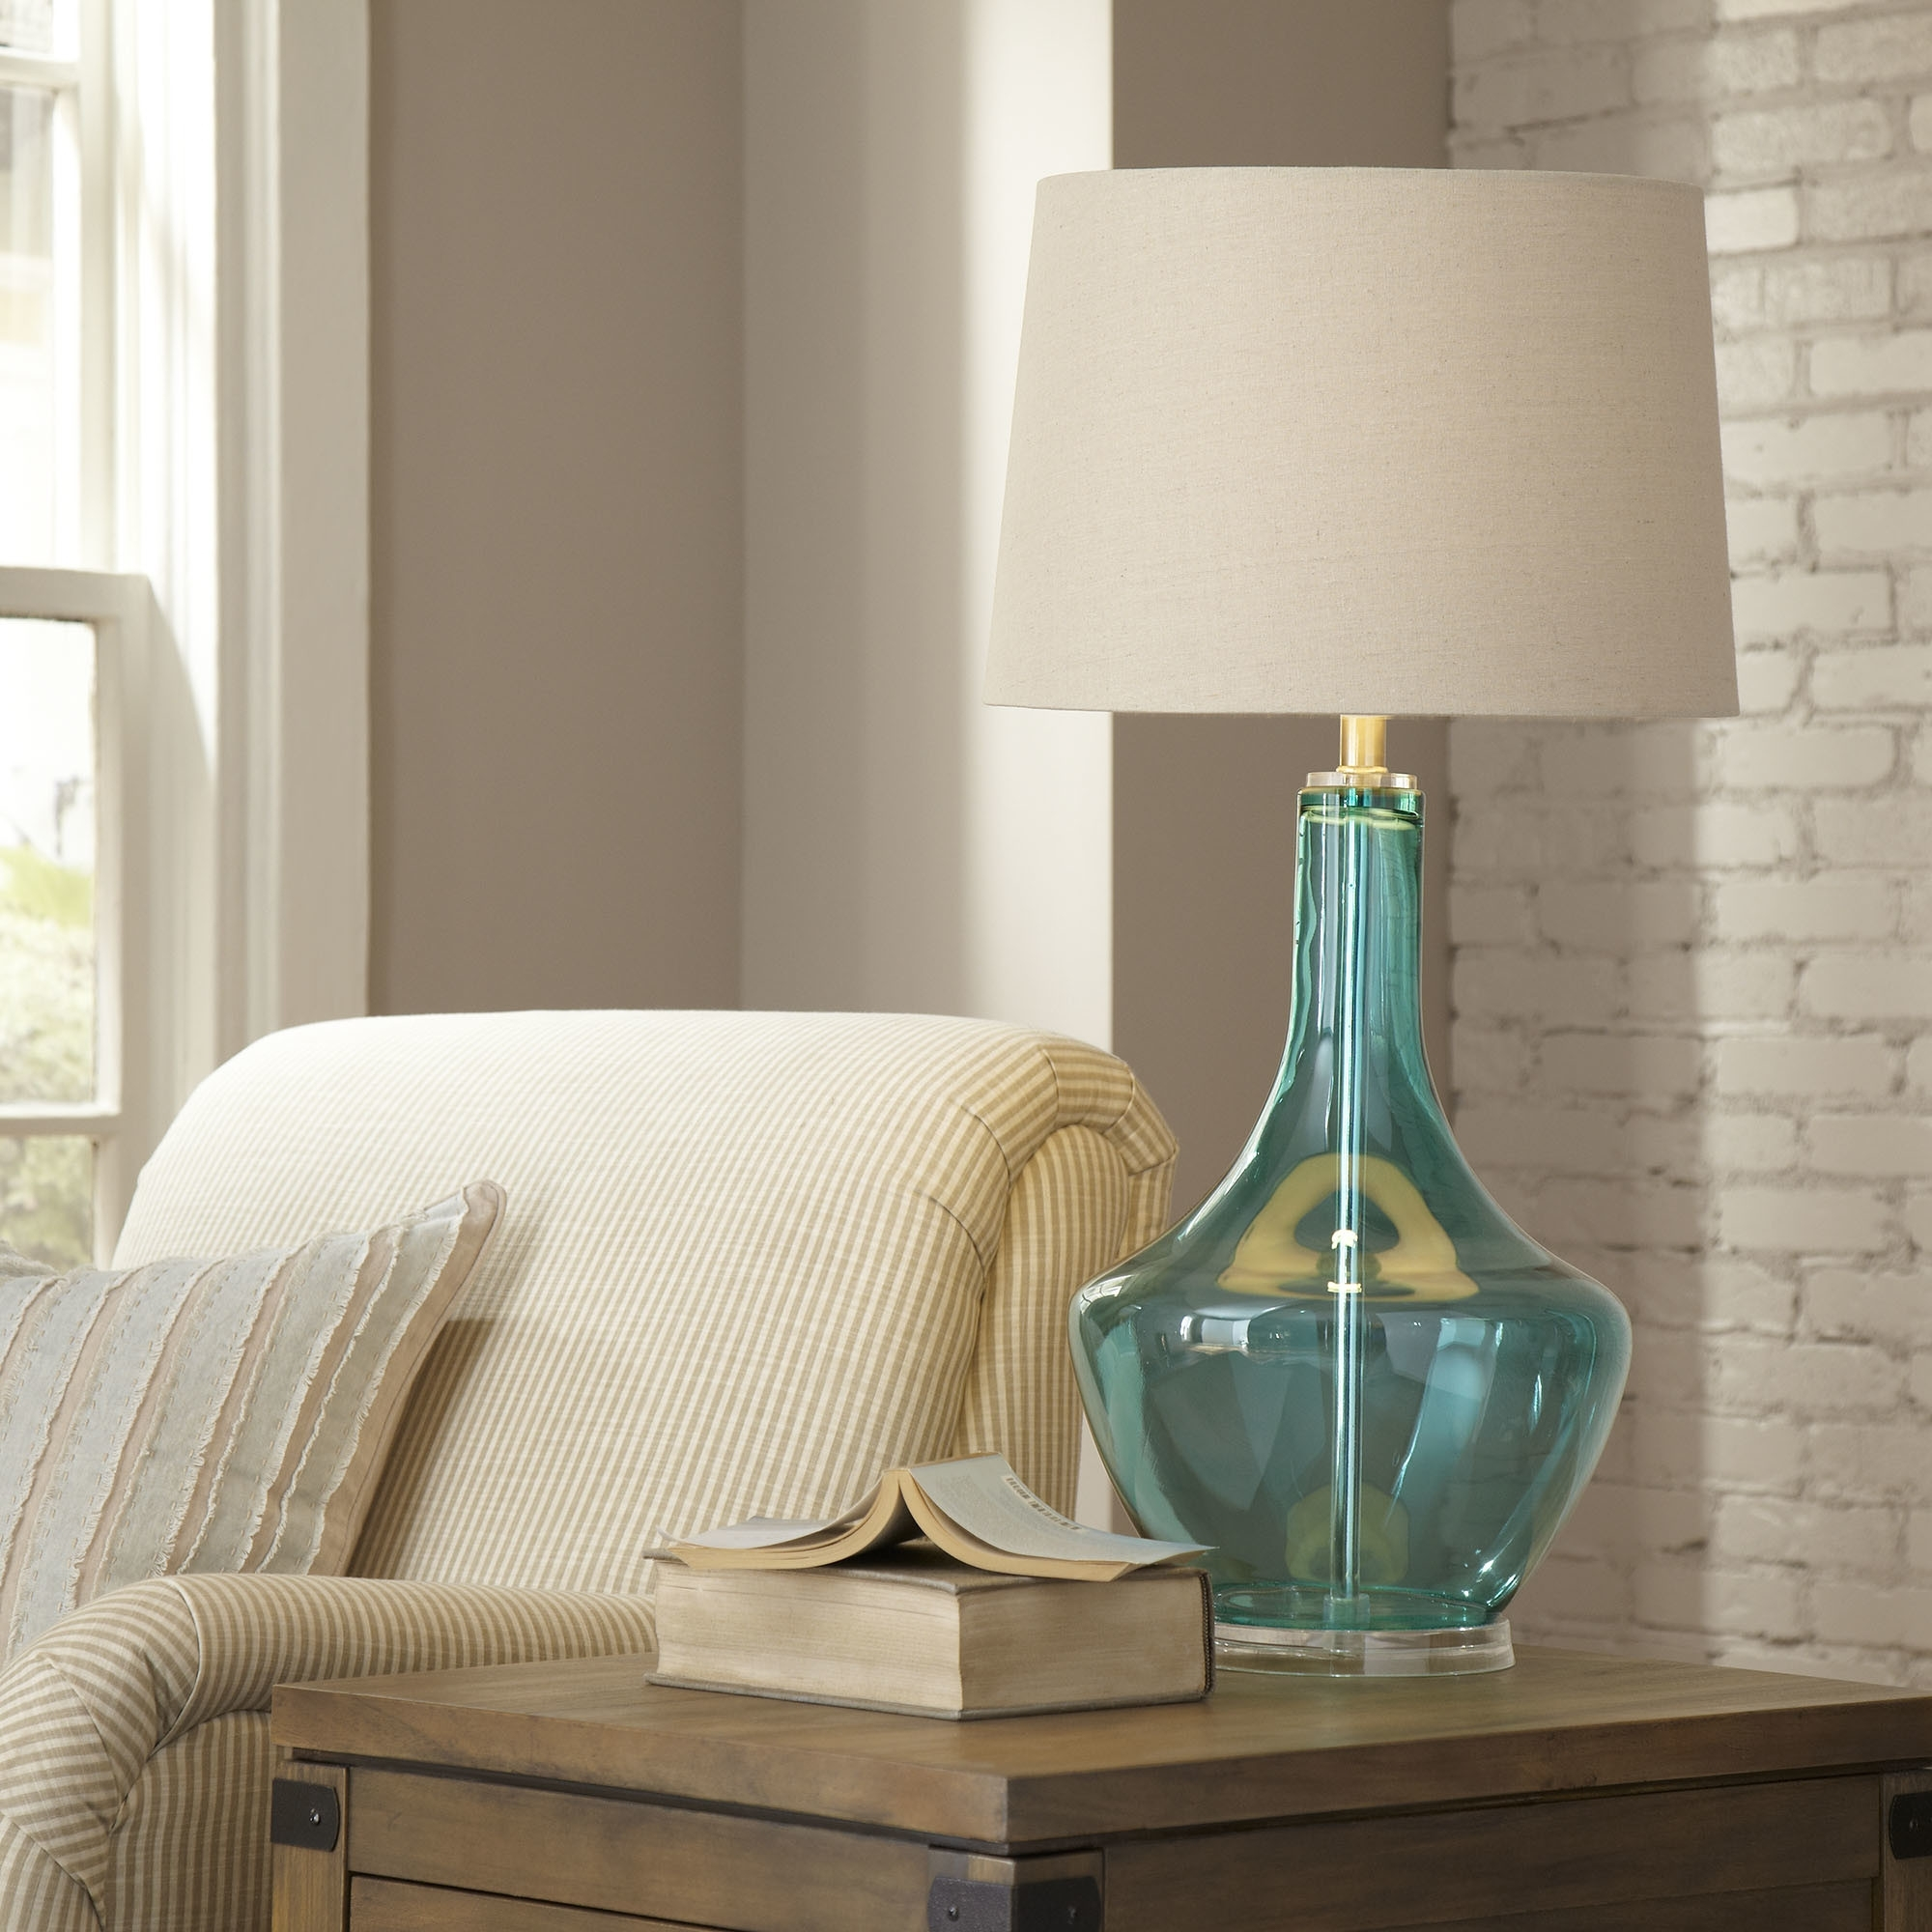 15 Photo Of Wayfair Living Room Table Lamps